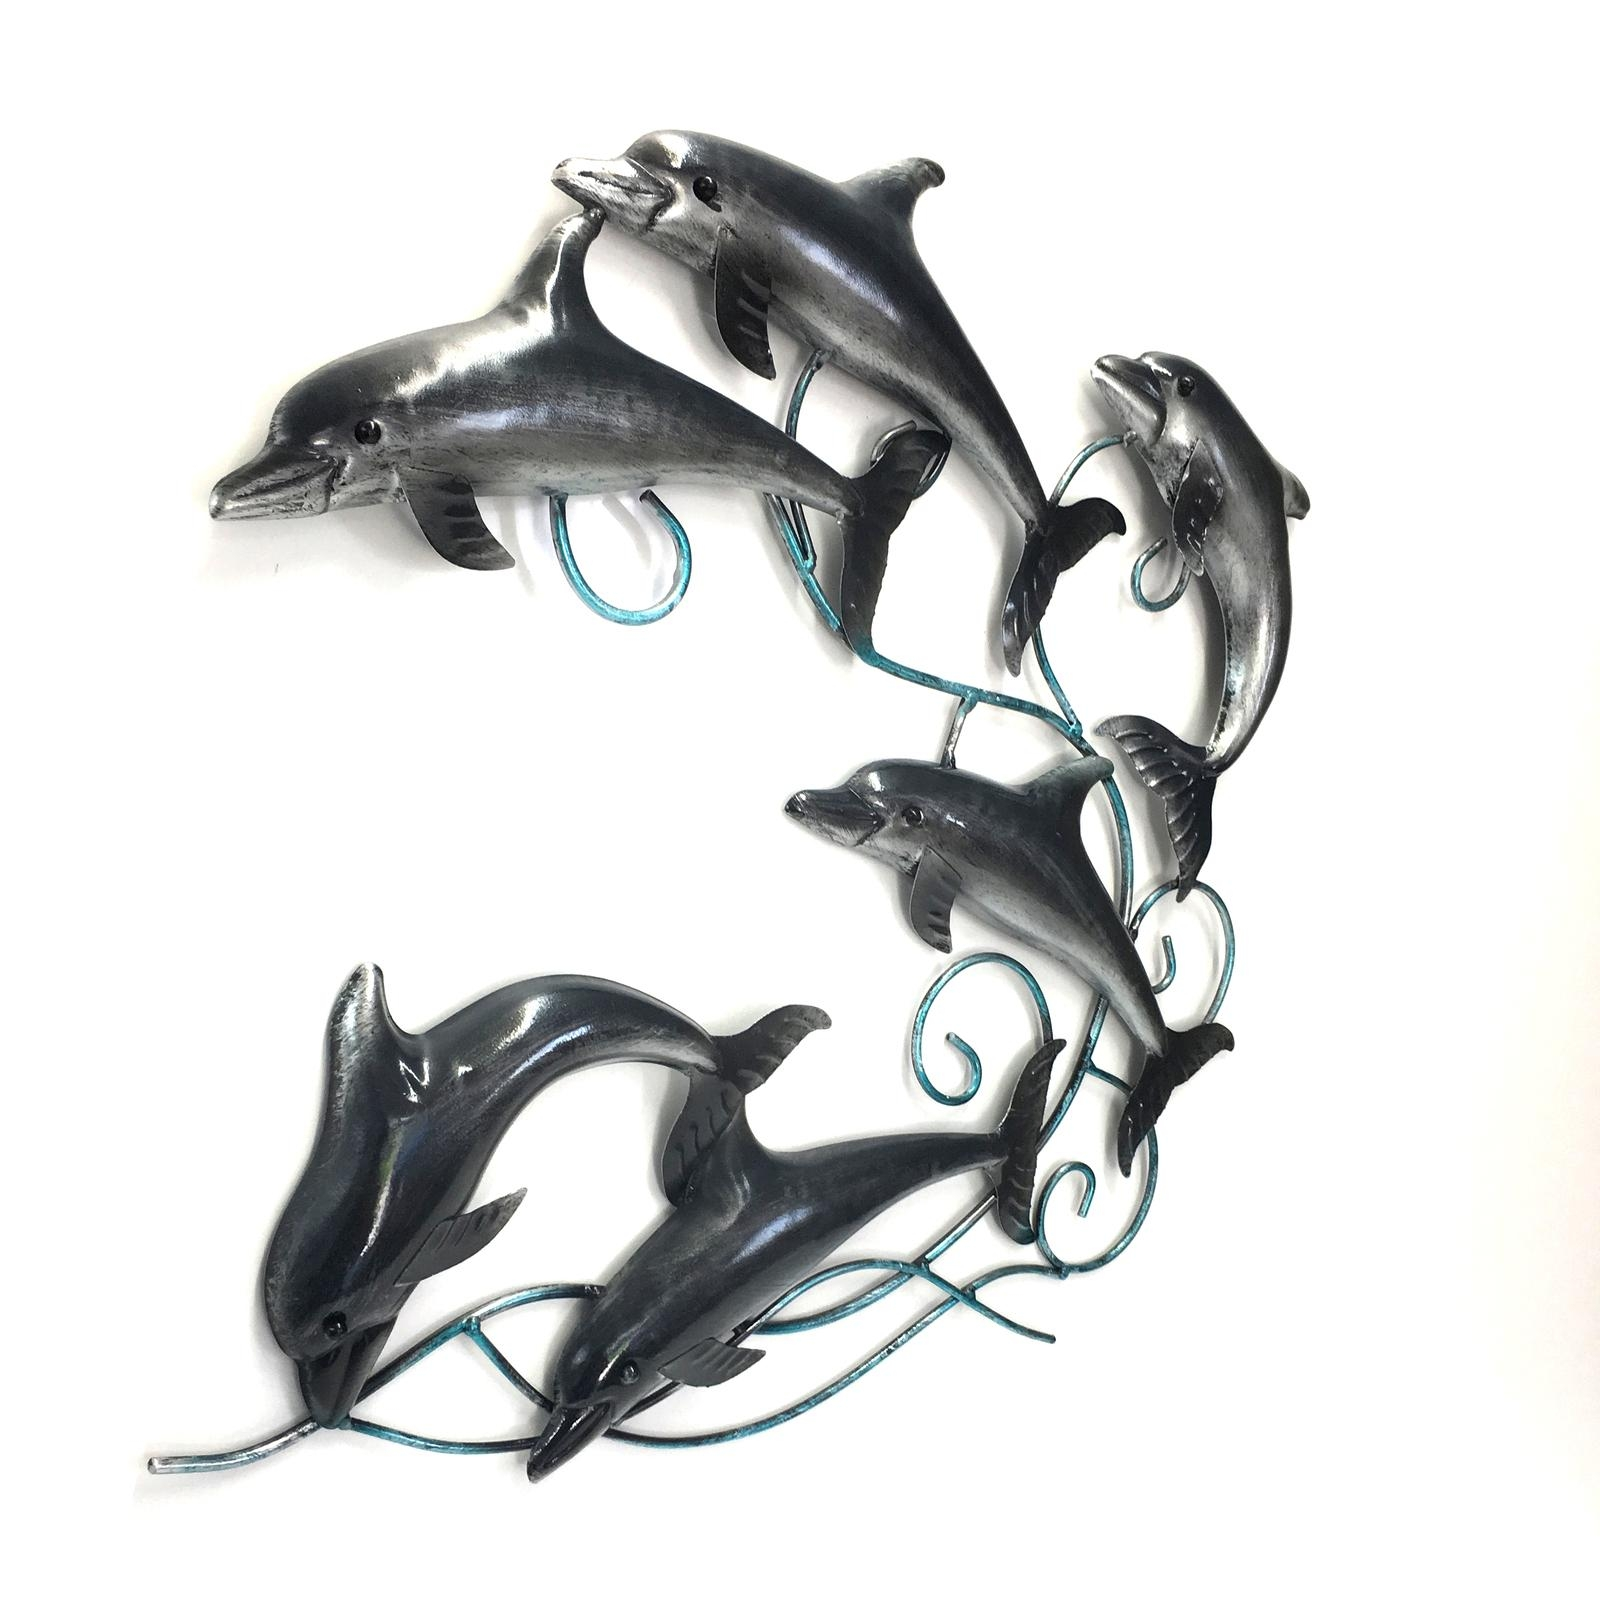 Dolphin Metal Wall Art Sculpture Hanging Garden Ornament Beach Big With Dolphin Metal Wall Art (Image 7 of 20)